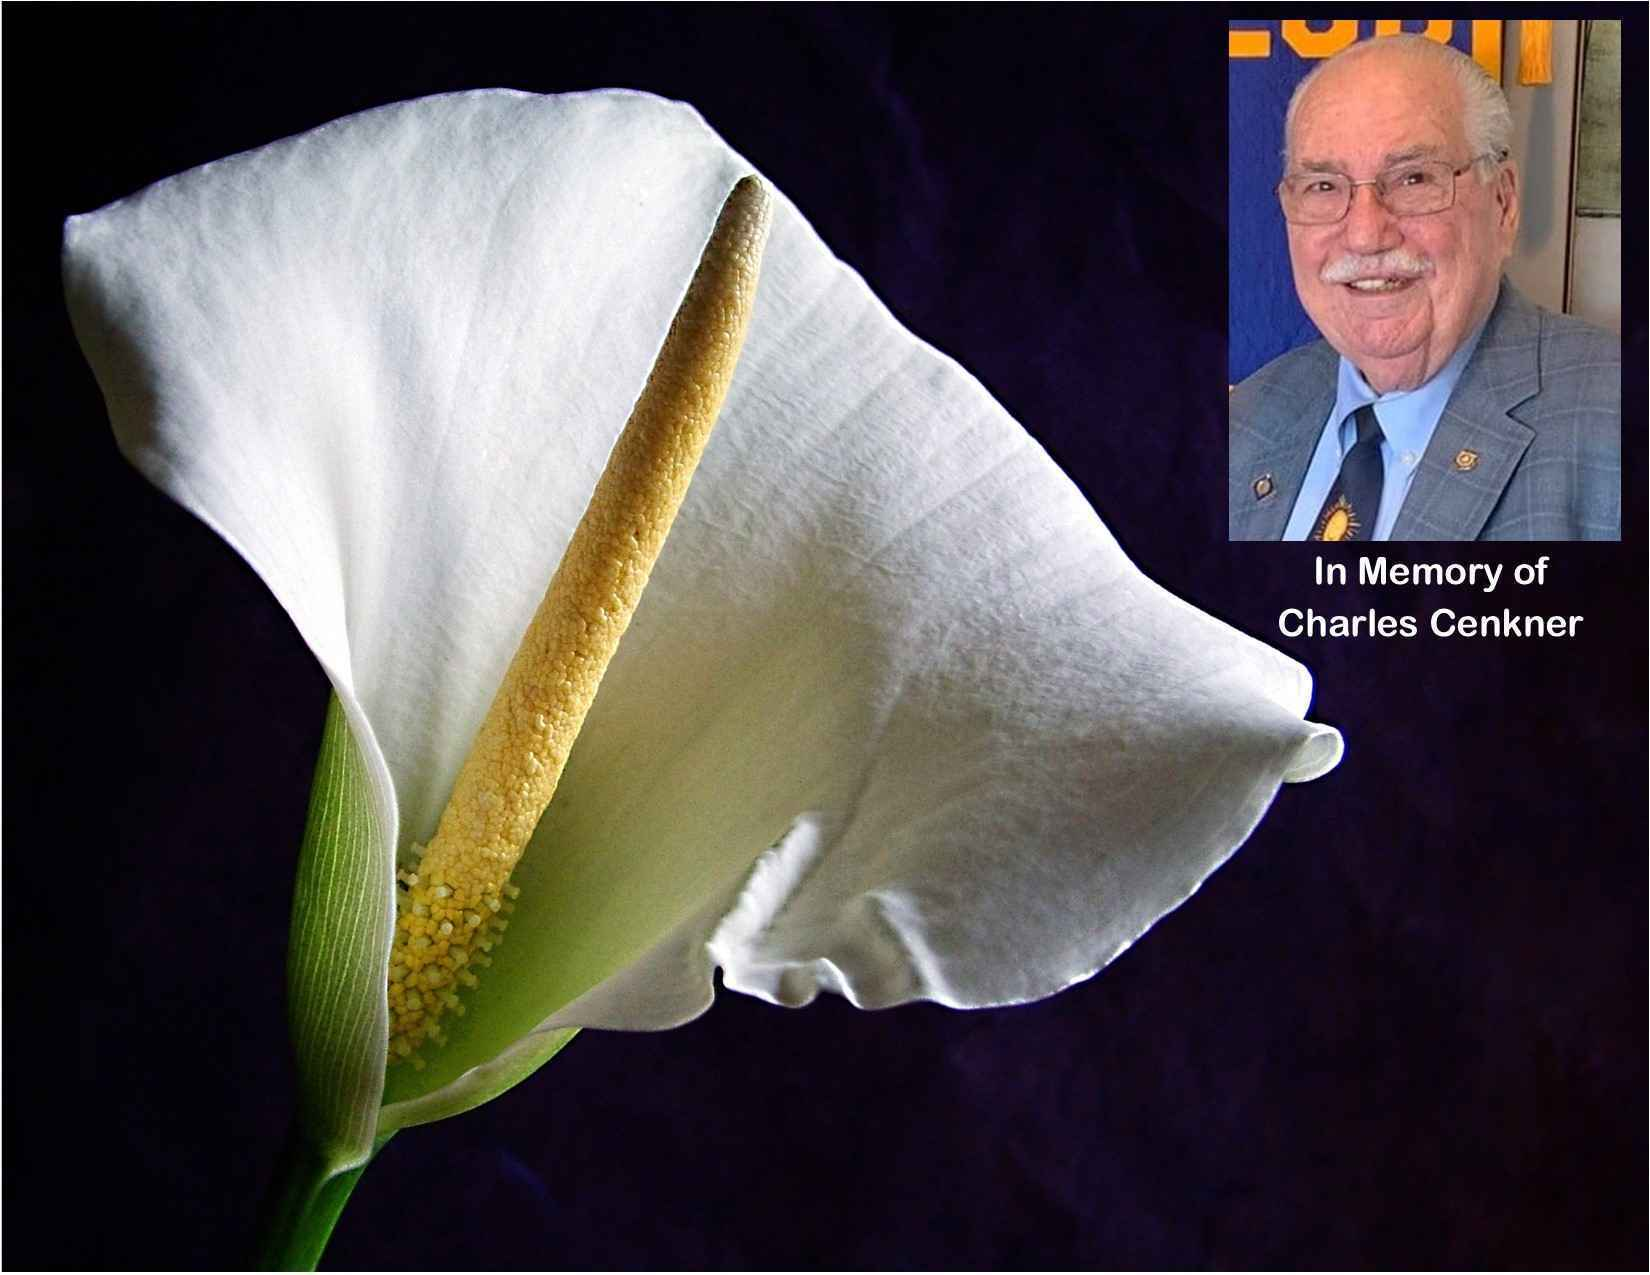 Remember the Life and Legacy of Charles Cenkner image